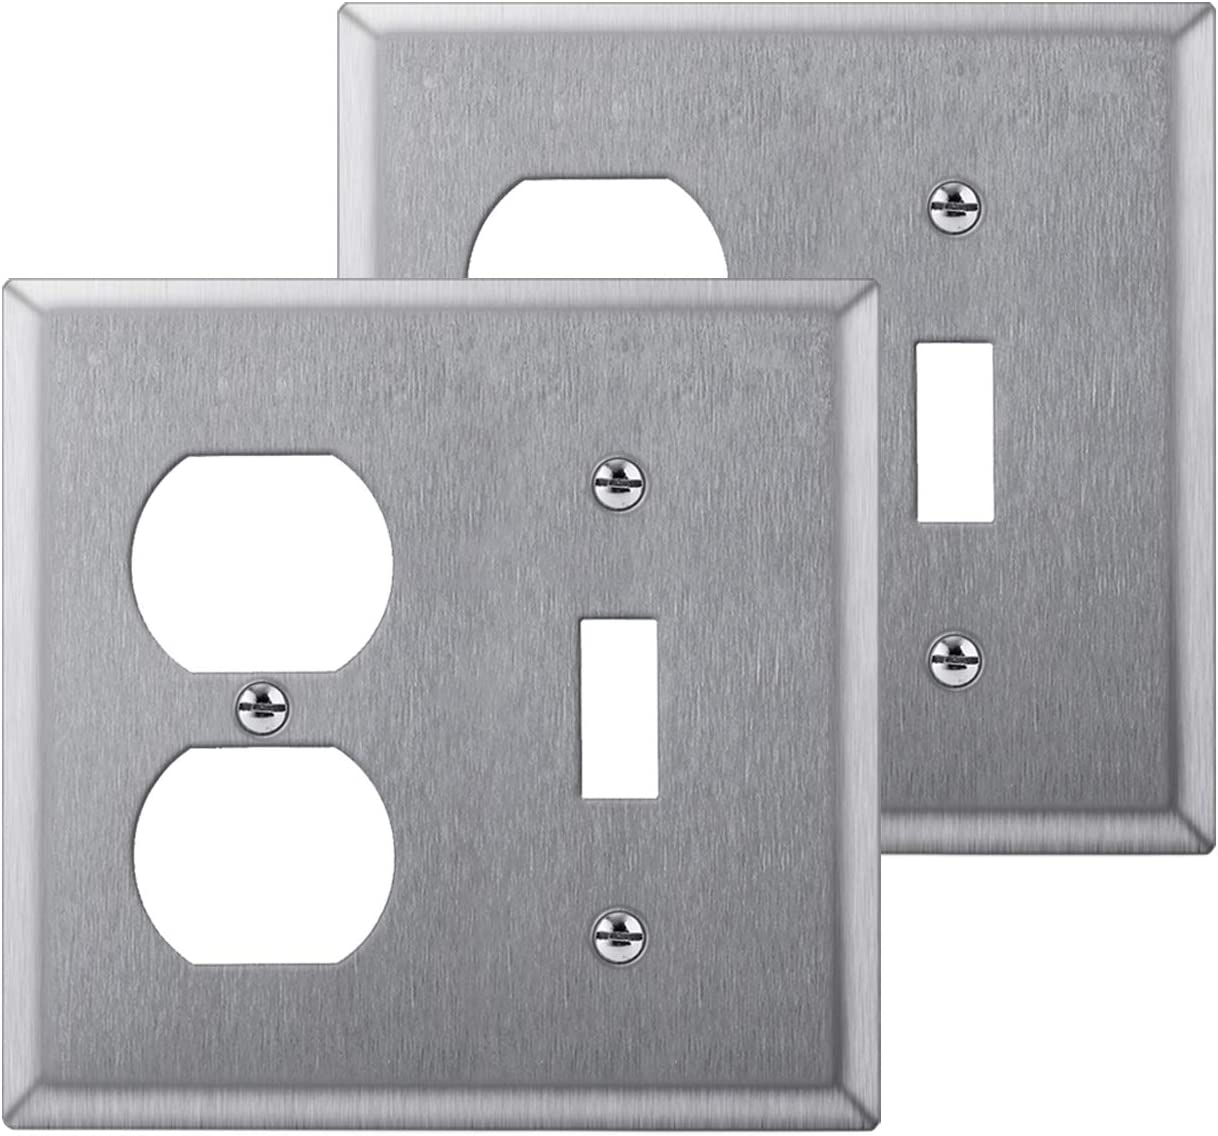 [2 Pack] BESTTEN 2-Gang Combination Metal Wall Plate, 1-Duplex/1-Toggle, Anti-Corrosion Stainless Steel Outlet and Switch Cover, Industrial Grade 304SS, Standard Size, Silver